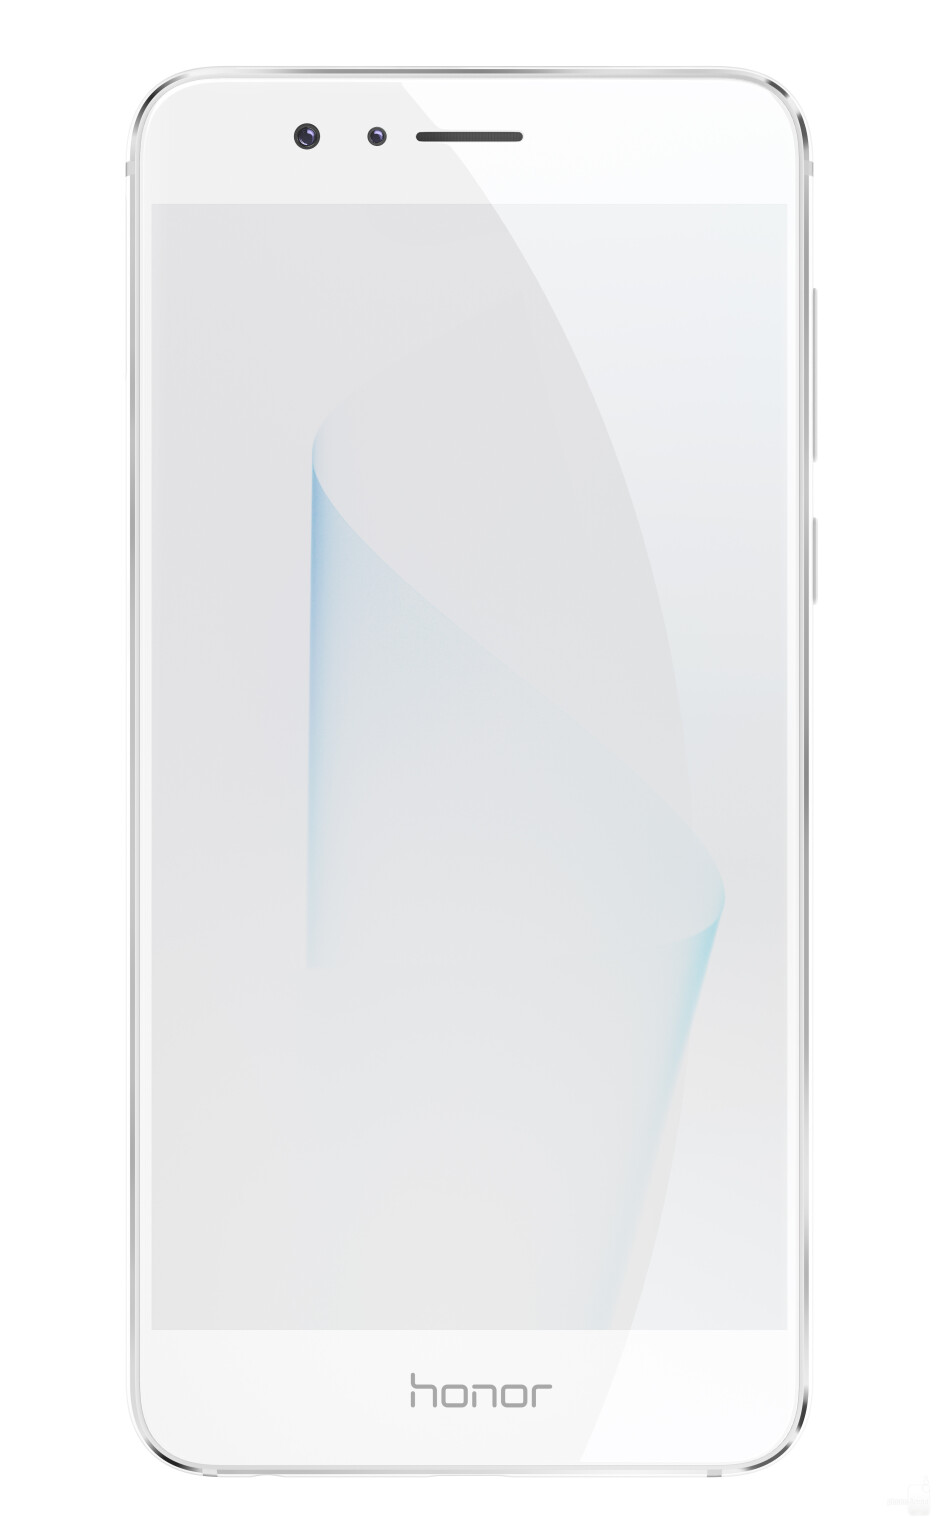 The new Honor 8 is announced